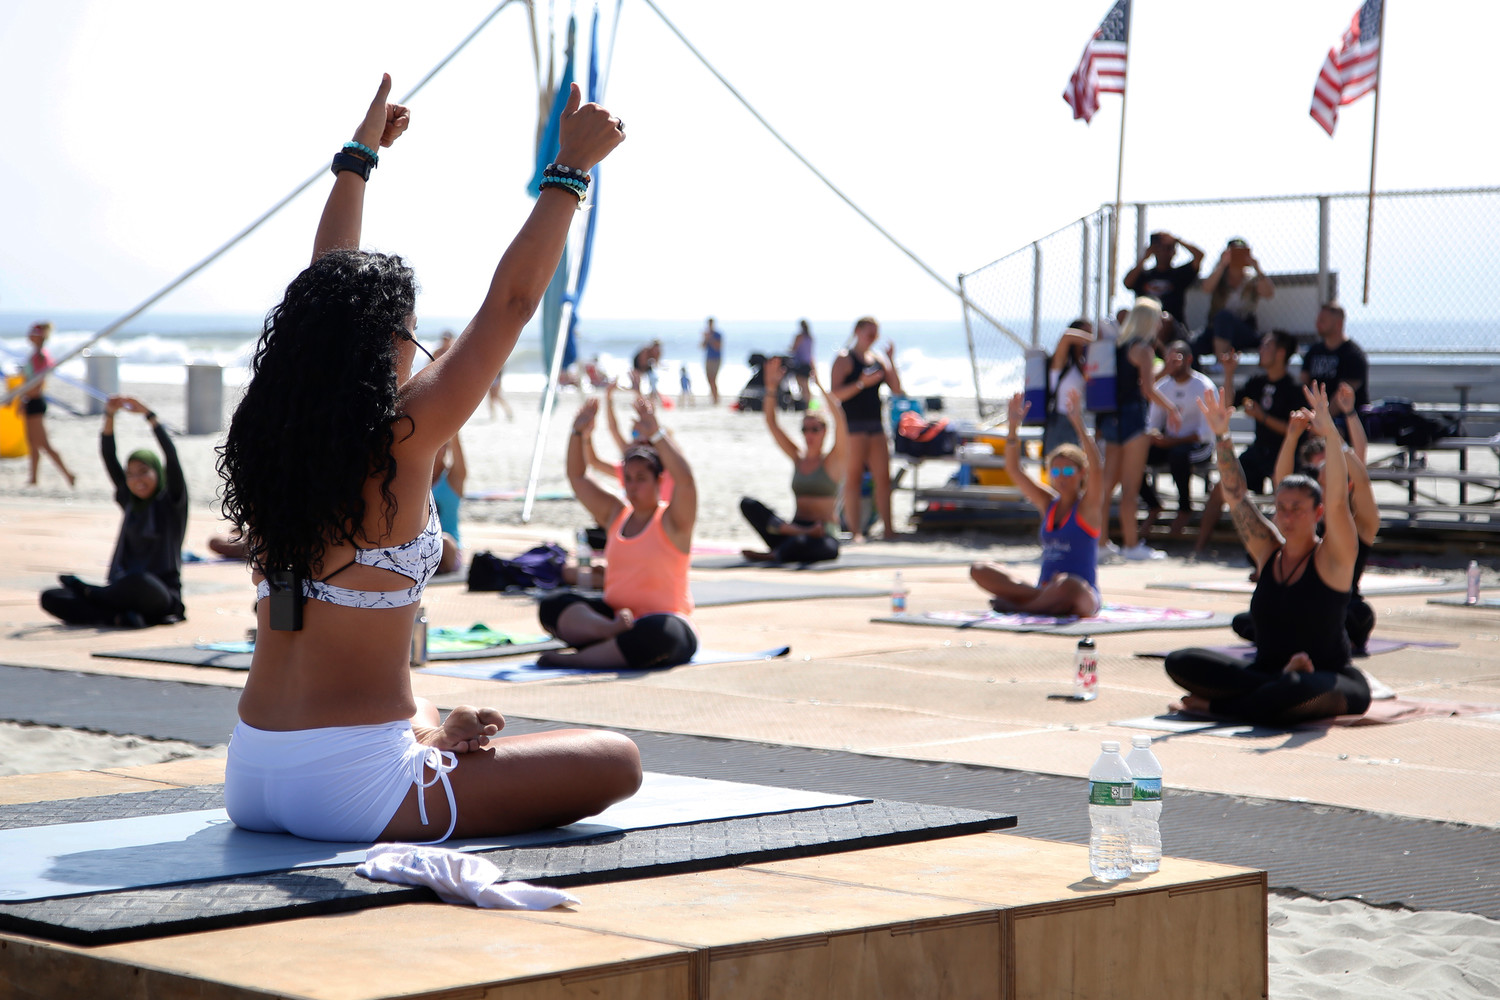 Buti Yoga instructor Gladys Duarte conducted a class on the beach at NY Fit Fest.